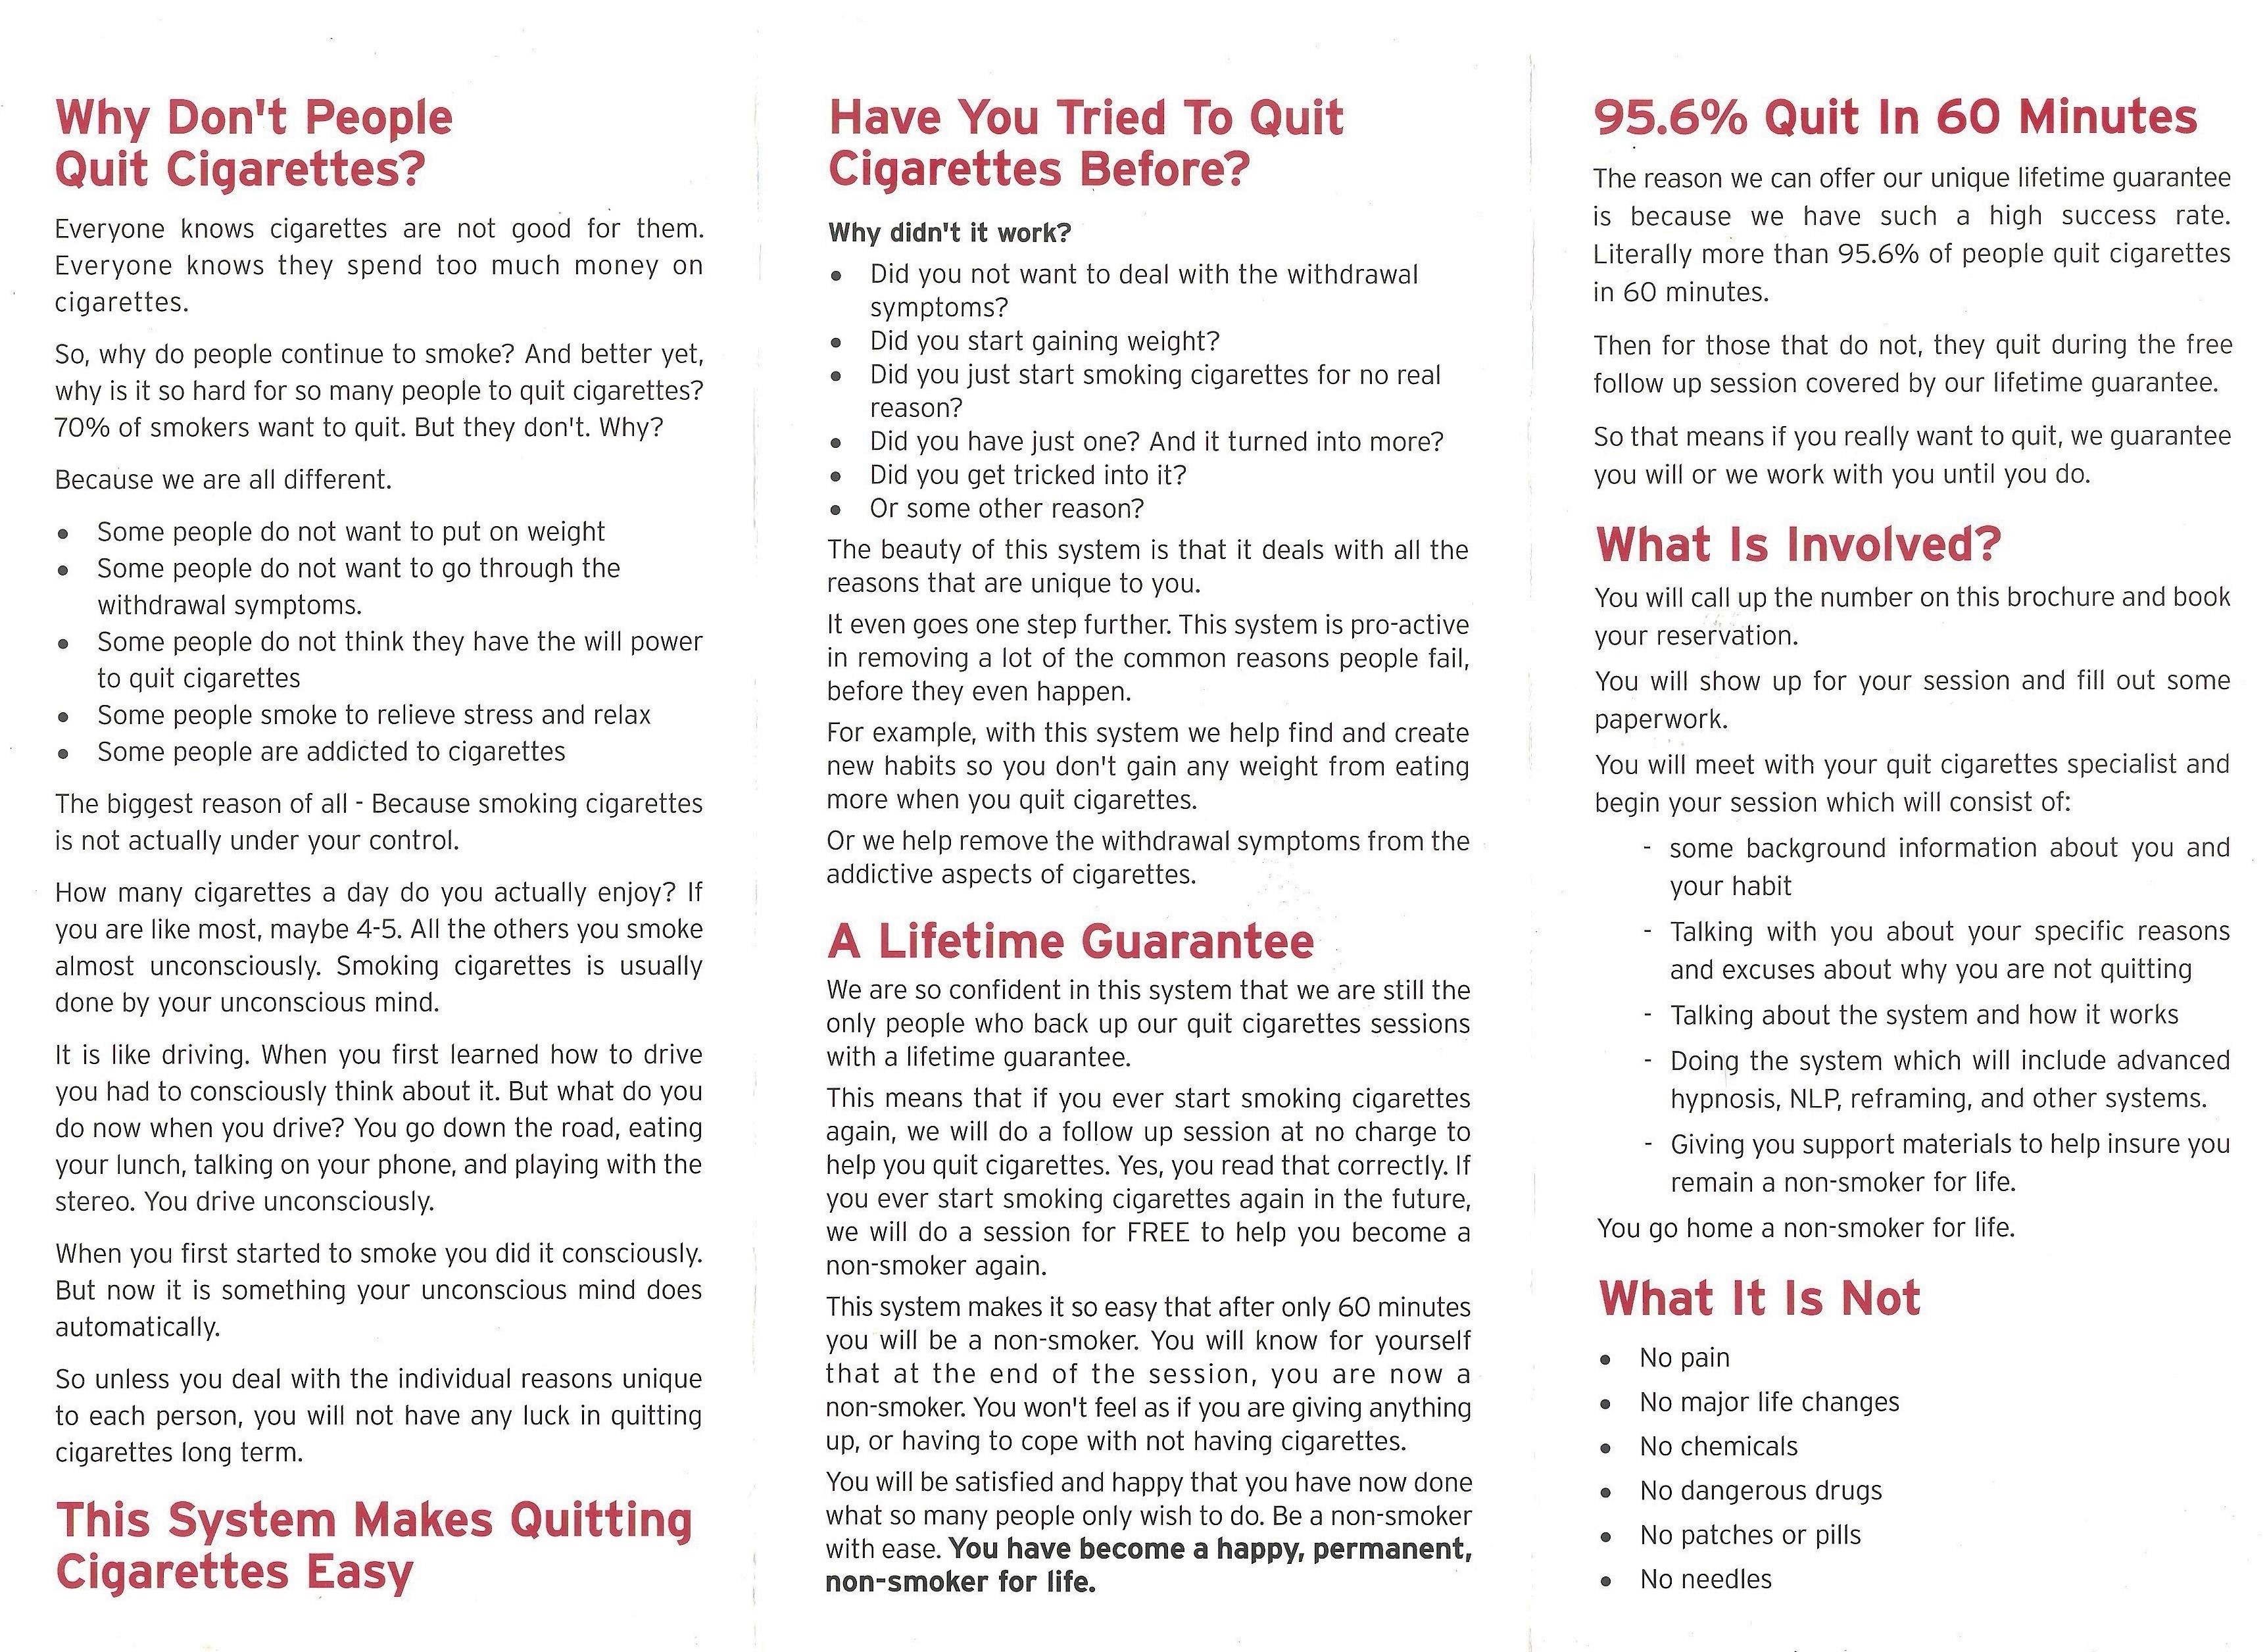 Quit Cigarettes in 60 Minutes - Guaranteed!